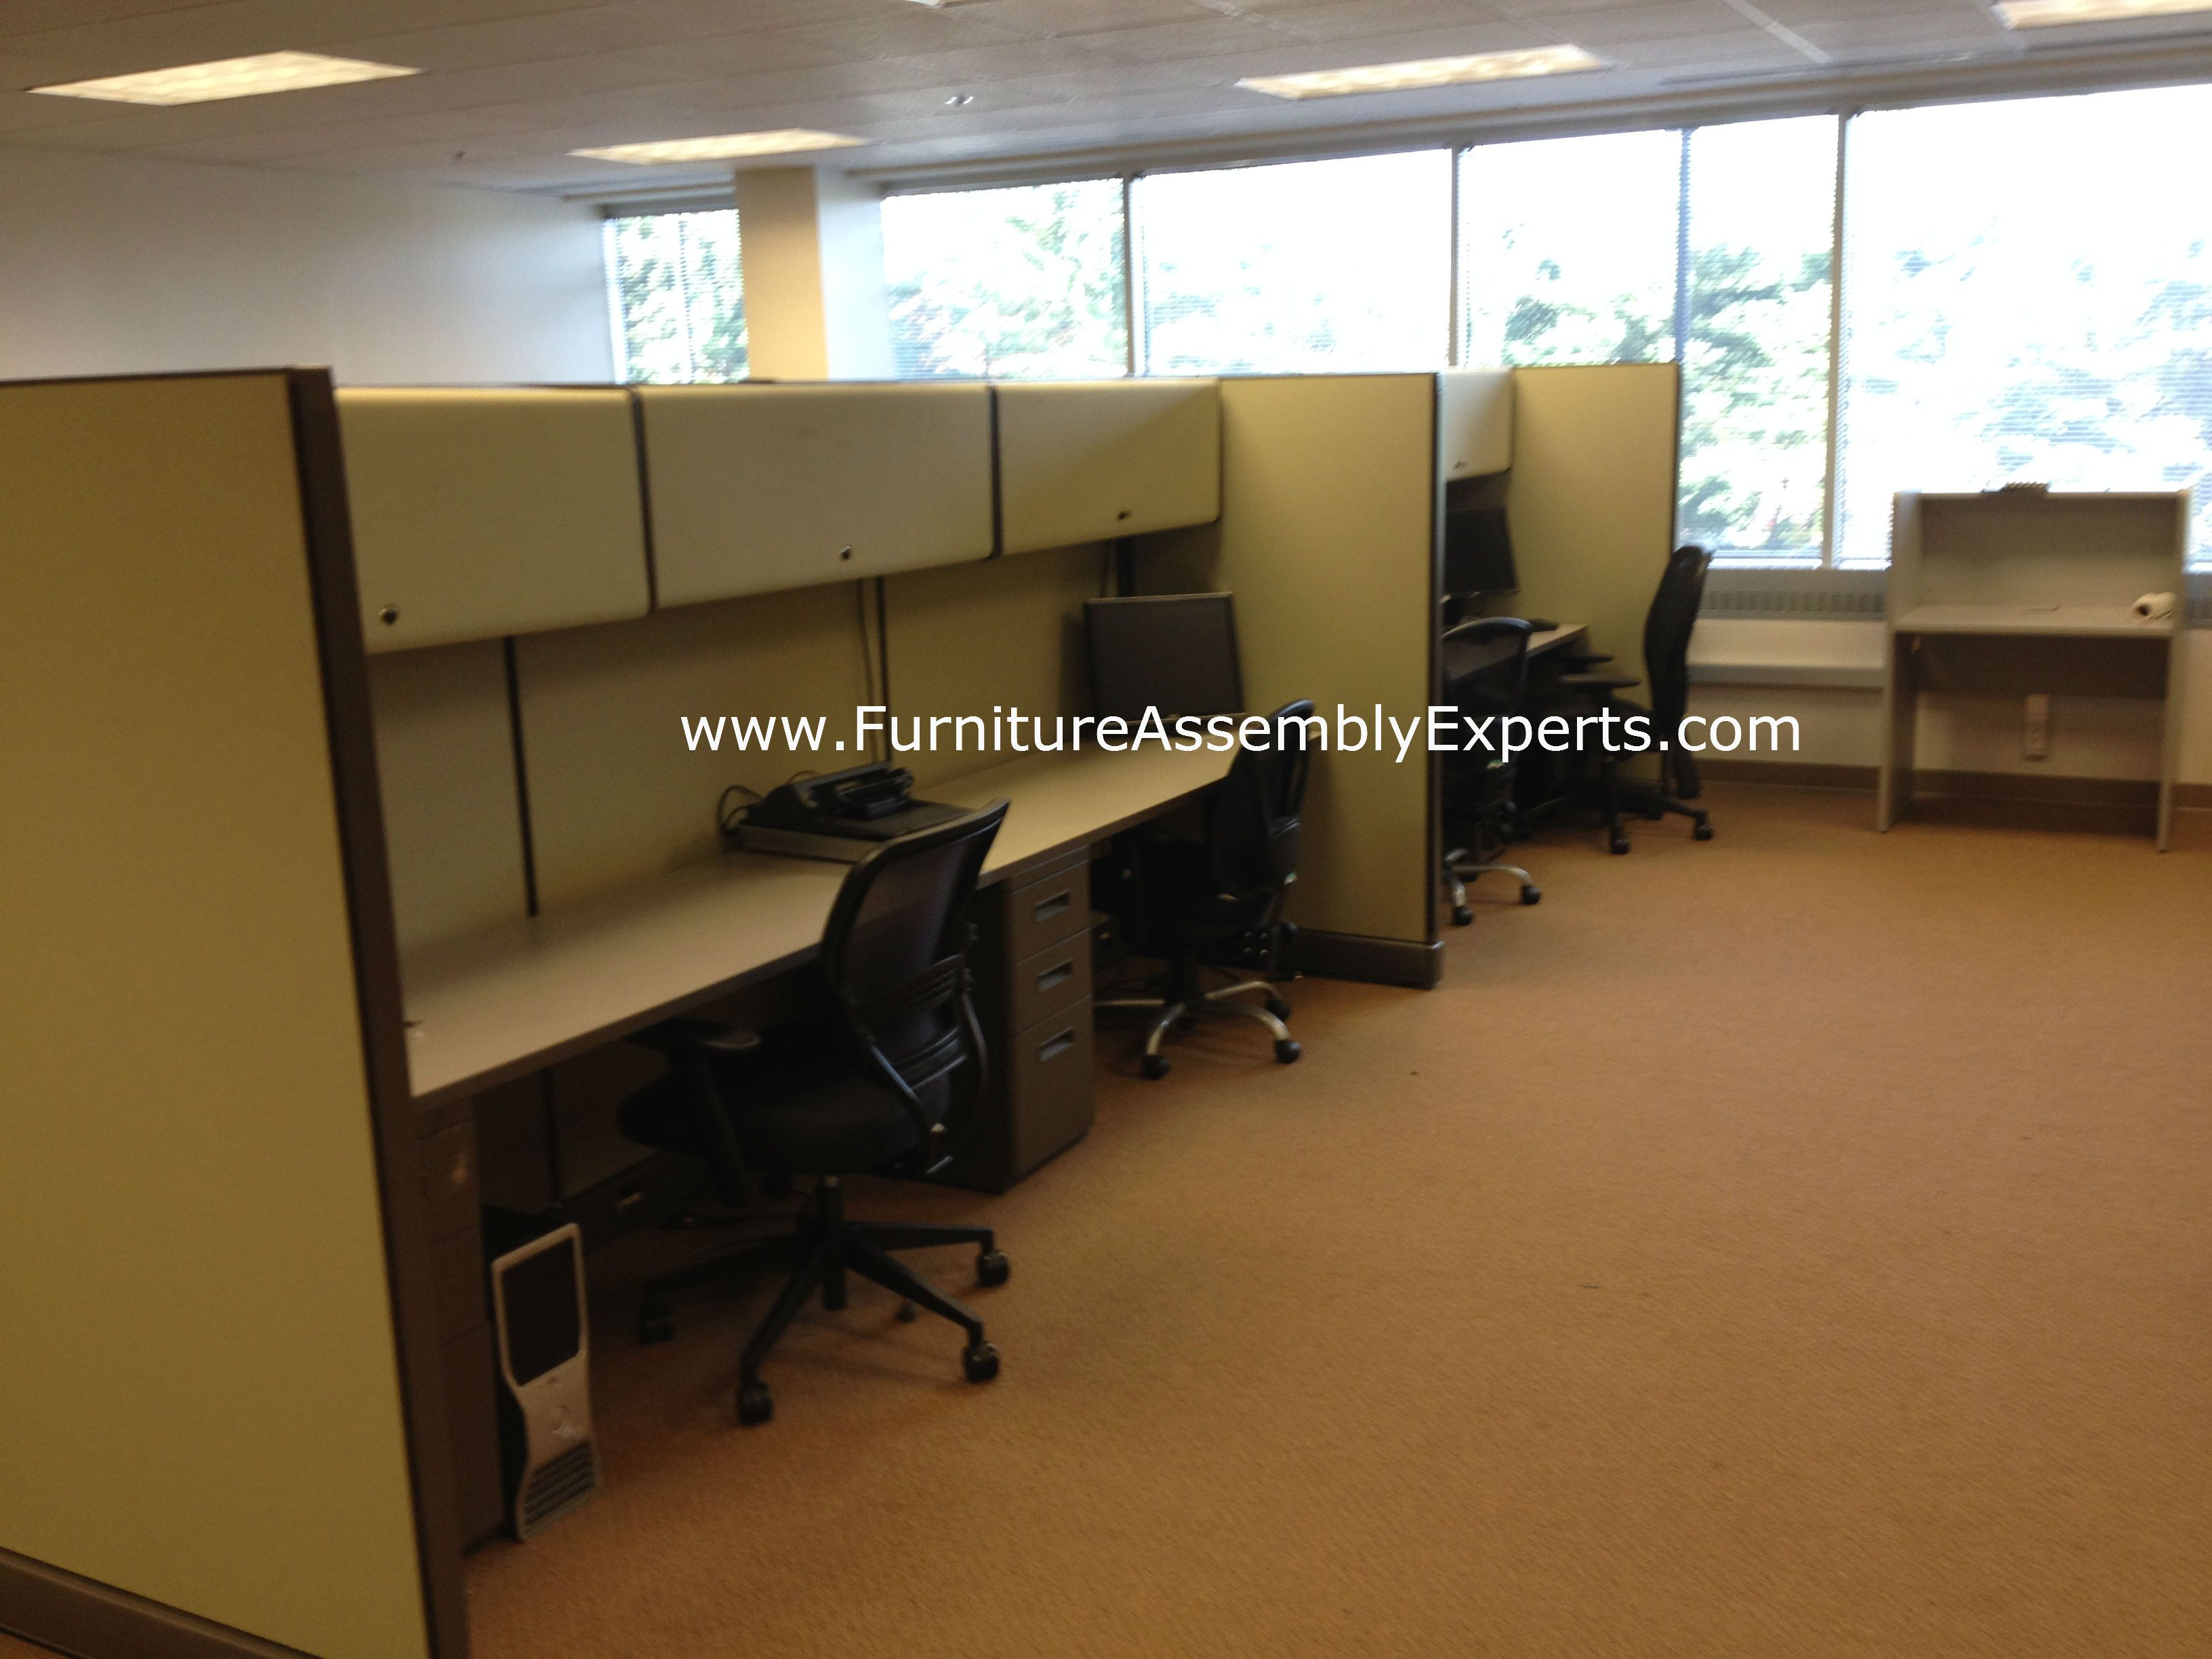 Used Office Cubicles Embled And Reconfigured In Washington Dc By Furniture Embly Experts Llc